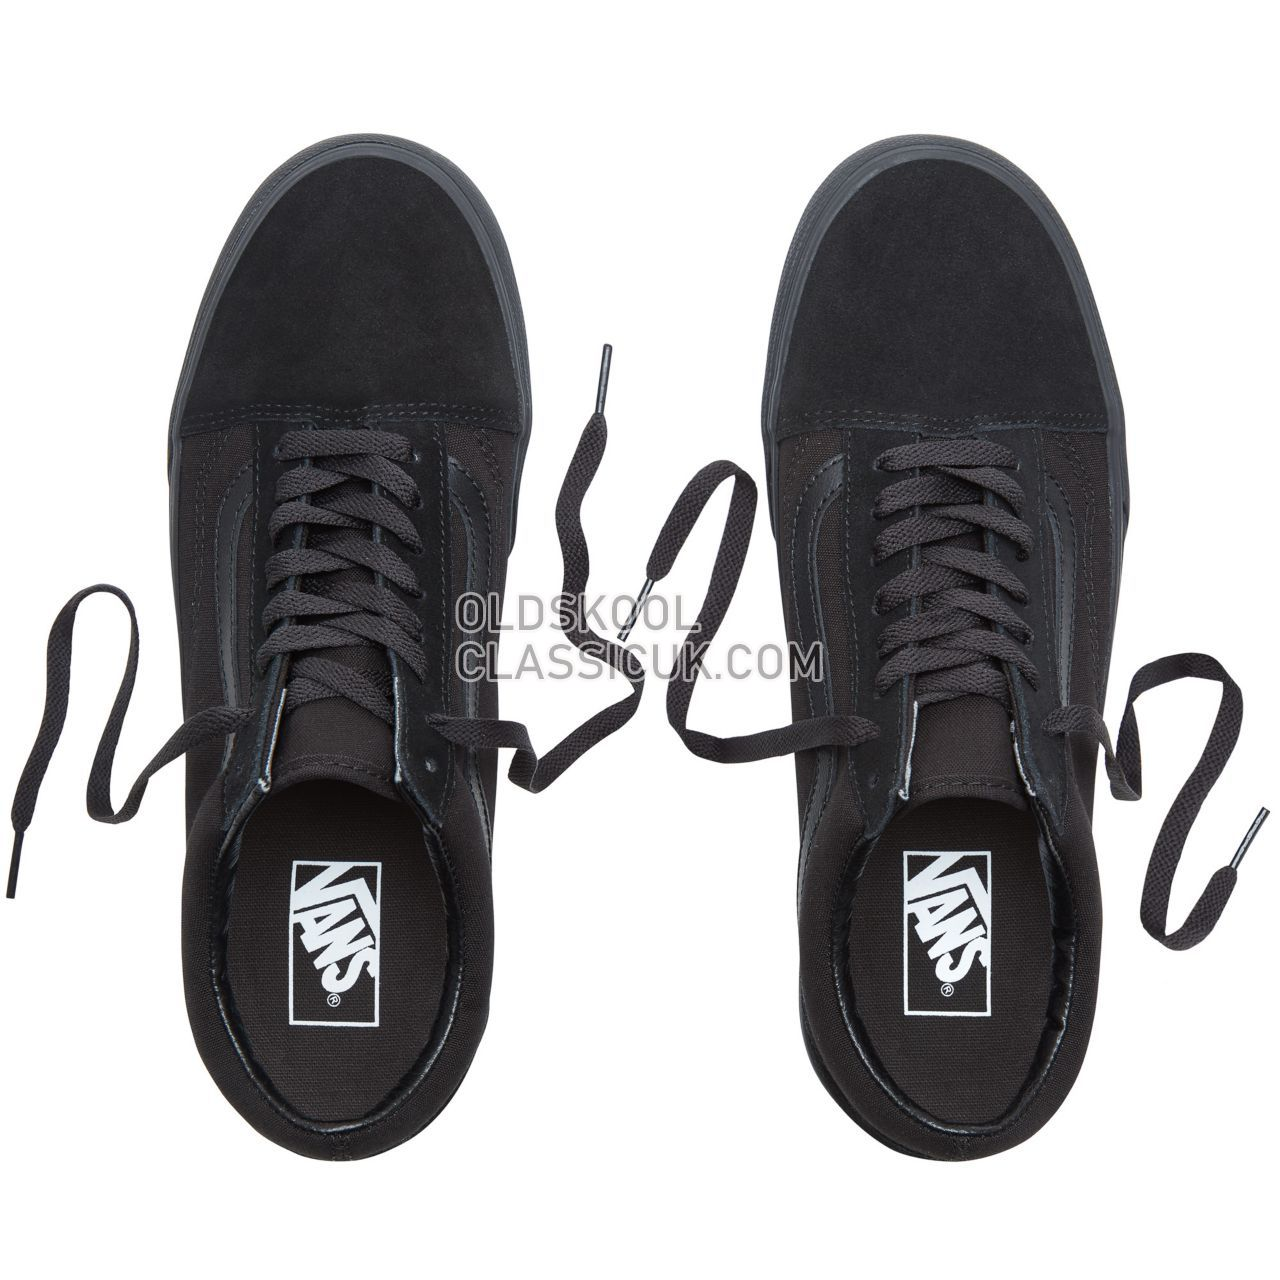 Vans Platform Old Skool Sneakers Womens Black VN0A3B3UBKA Shoes